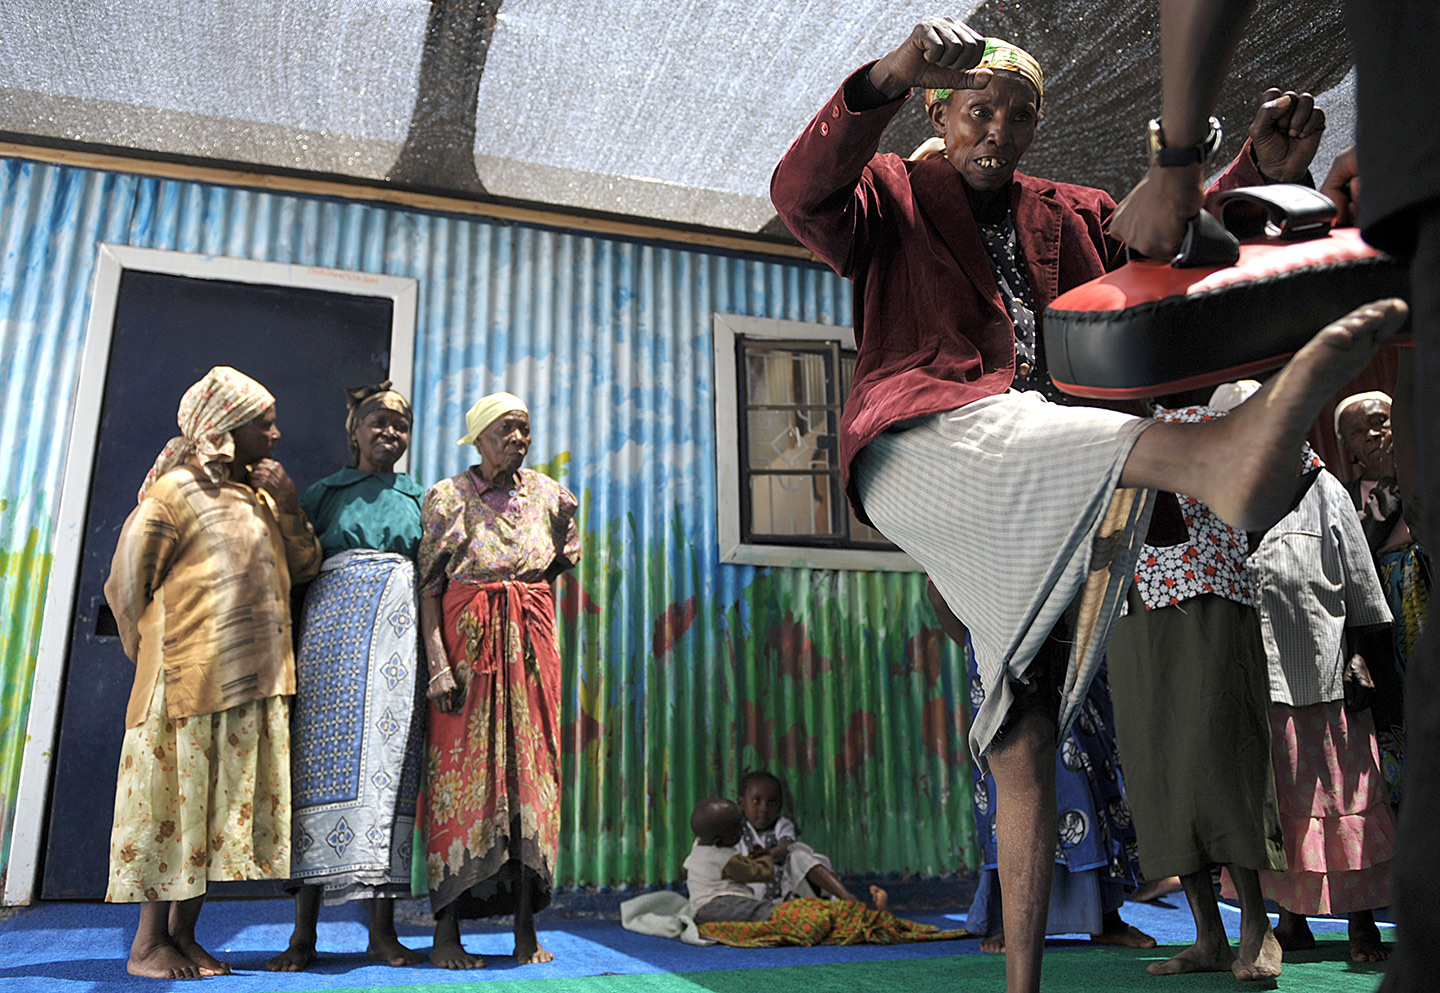 Karate Grandmothers of Kenya